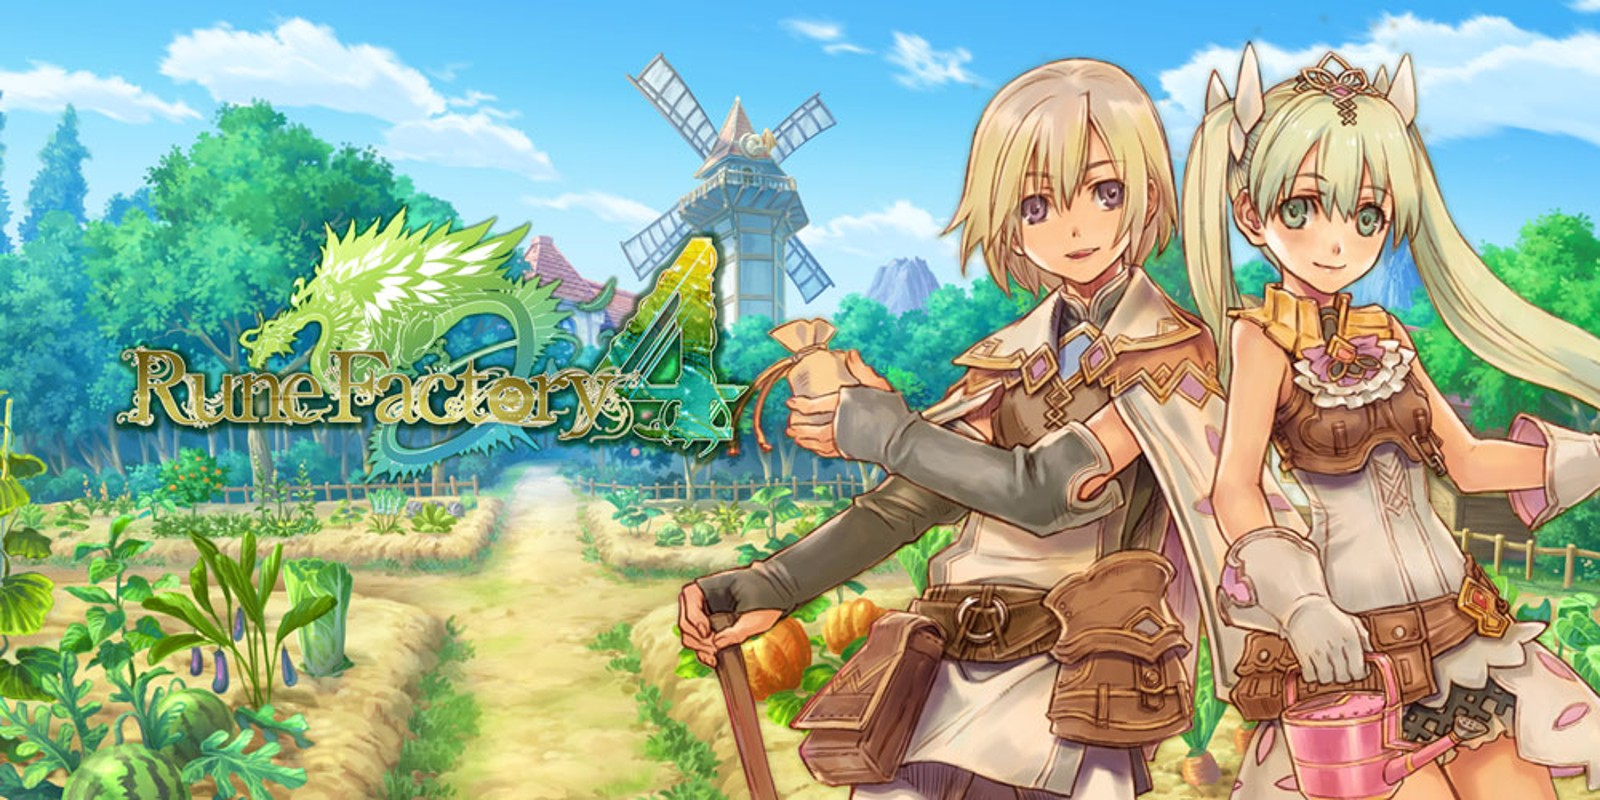 Rune factory 4 dating event